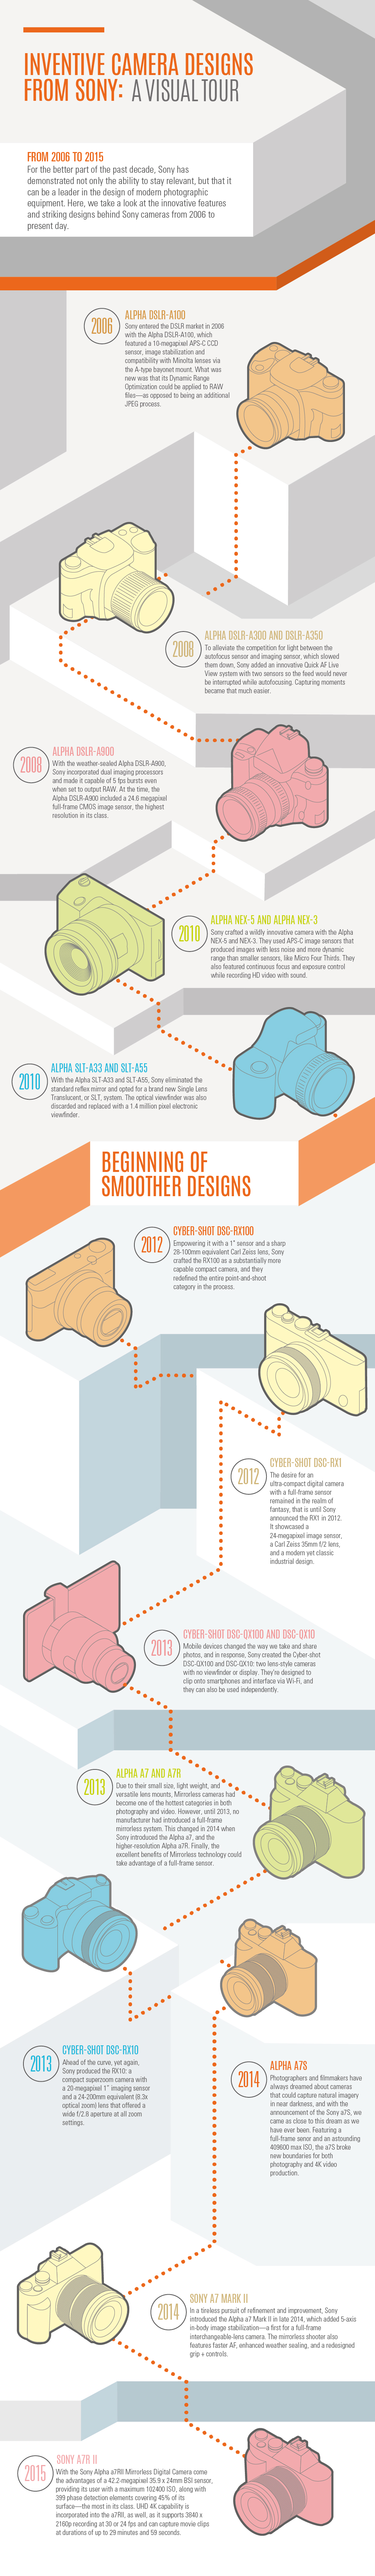 Infographic Inventive Camera Designs From Sony Bh Explora Digital Diagram Film My Journey You Can Learn All About The Fine Details Of These Breakthrough Cameras In Our Sonys Innovative Design And Technology Post